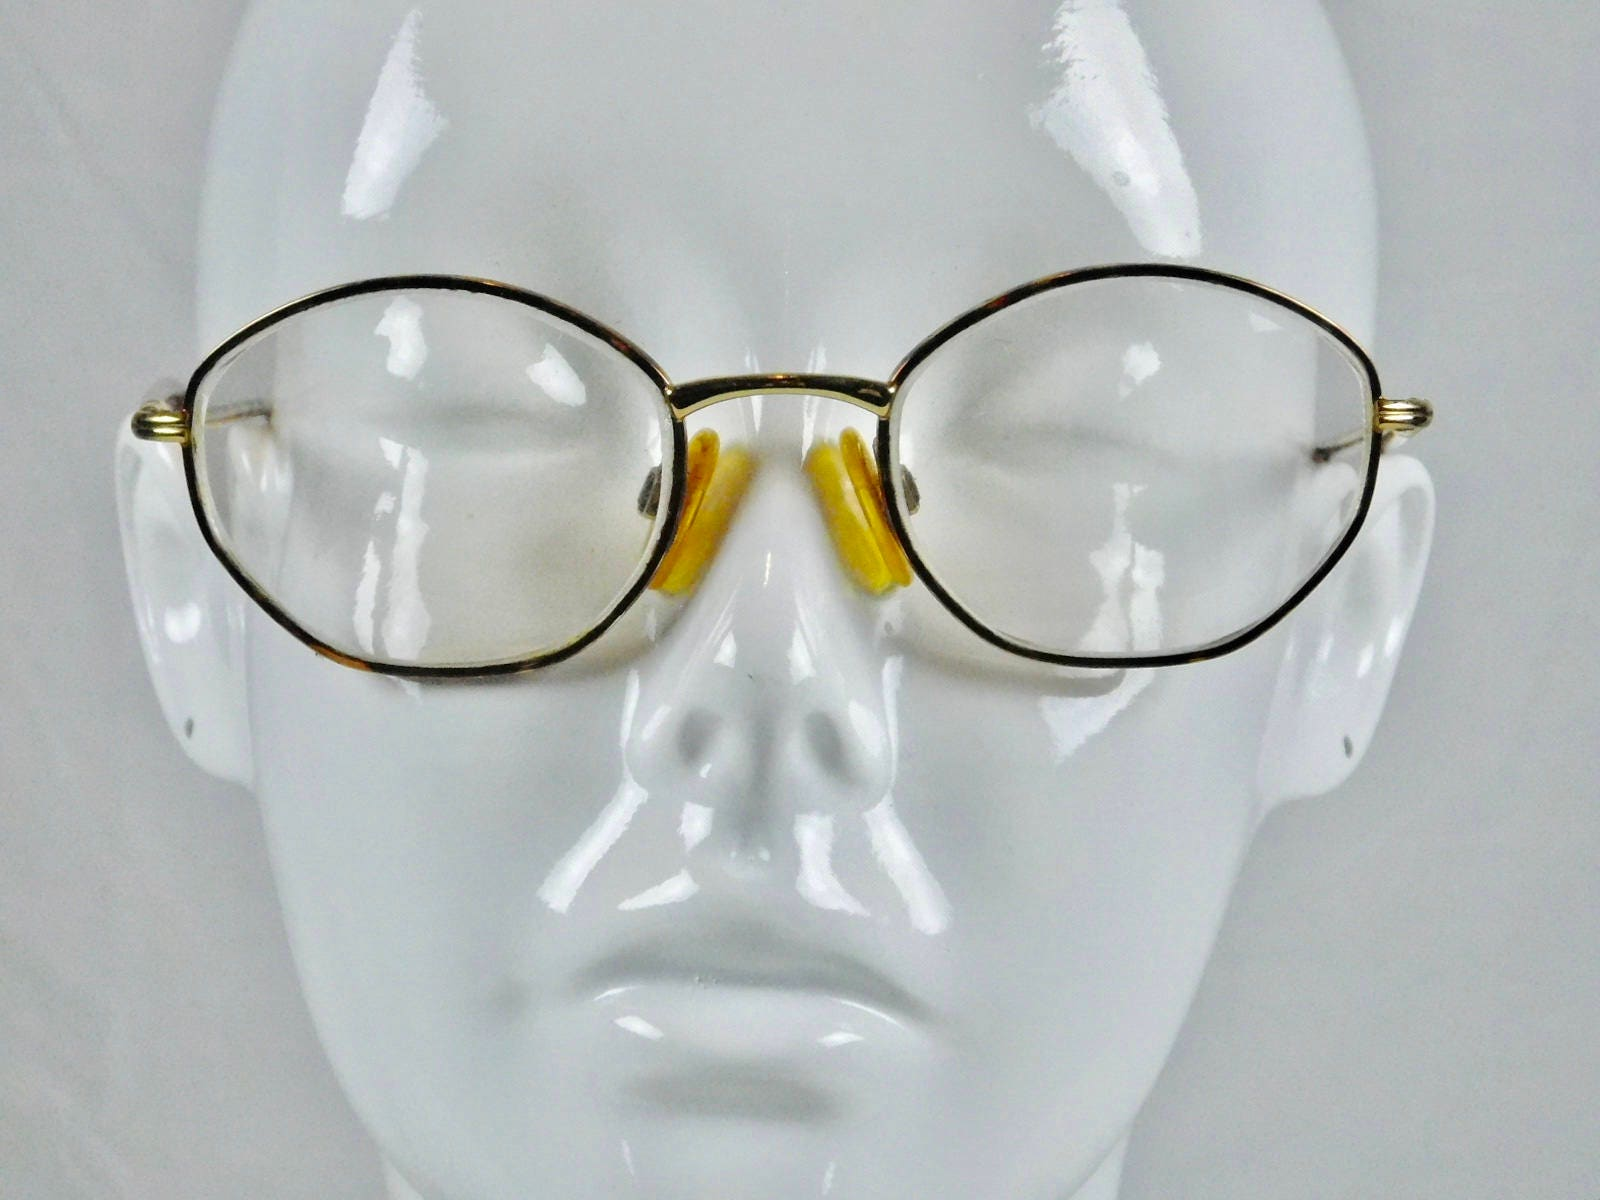 luxottica italy gold electroplated prescription eyeglasses indie